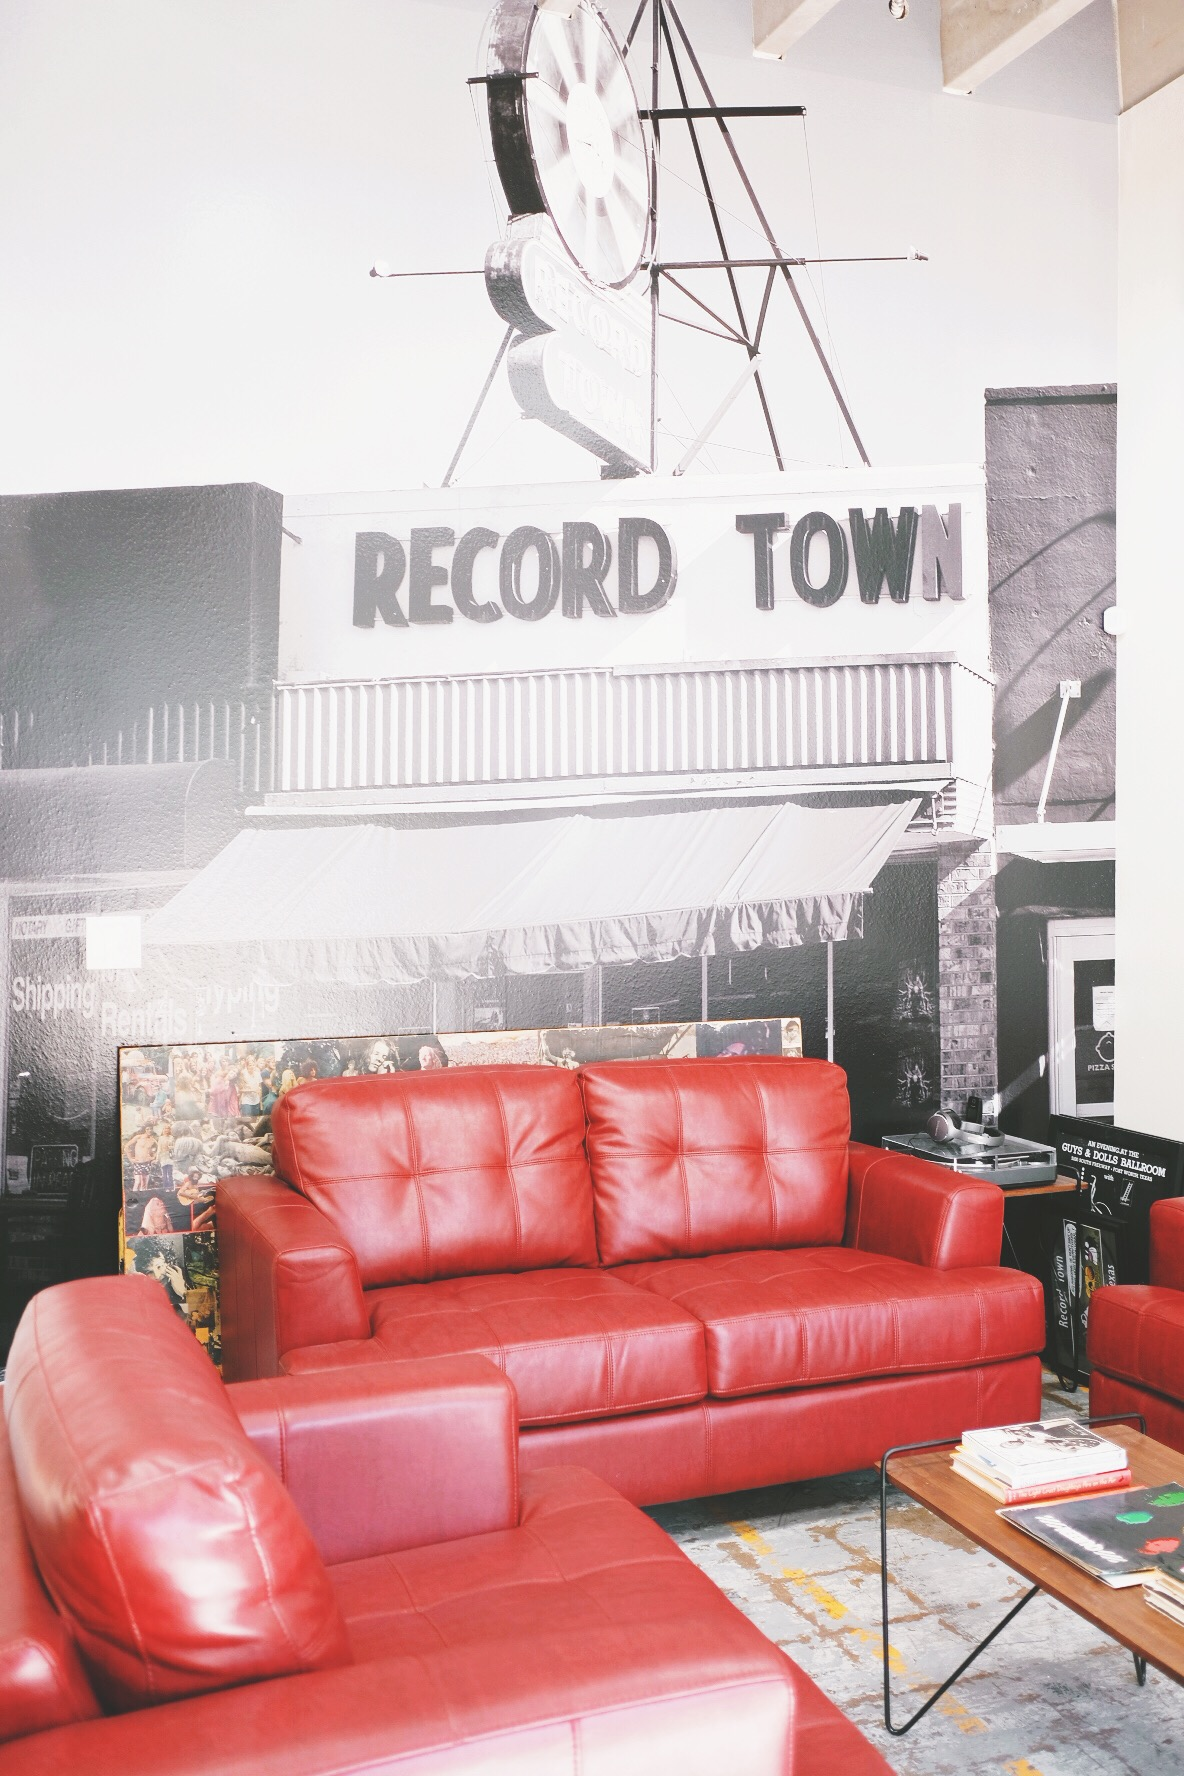 Fort Worth, TX Record Store | Vinyl, CD's, Cassettes, 45s